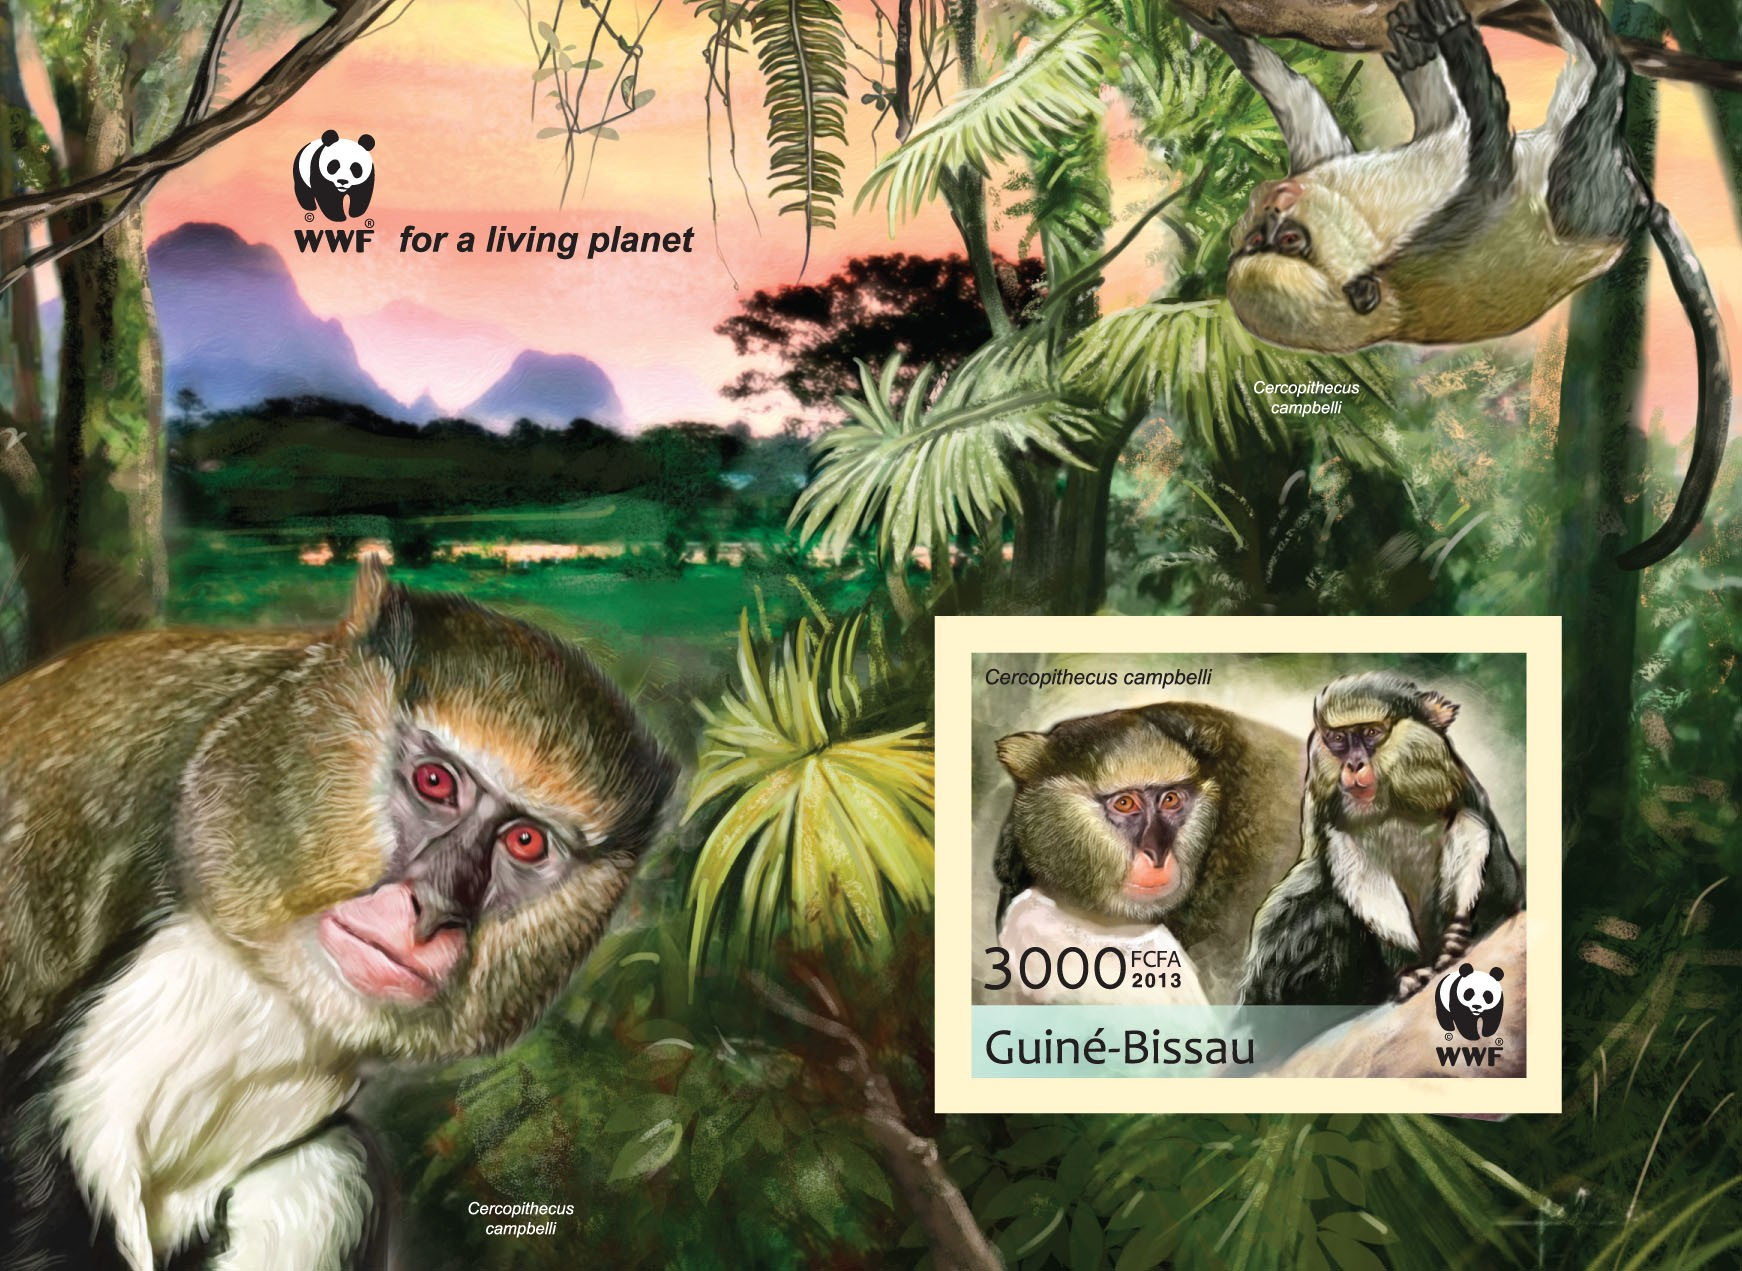 WWF - Monkeys (Cercopithecus campgelli) Souvenir sheet - Imperforated - Issue of Guinée-Bissau postage stamps